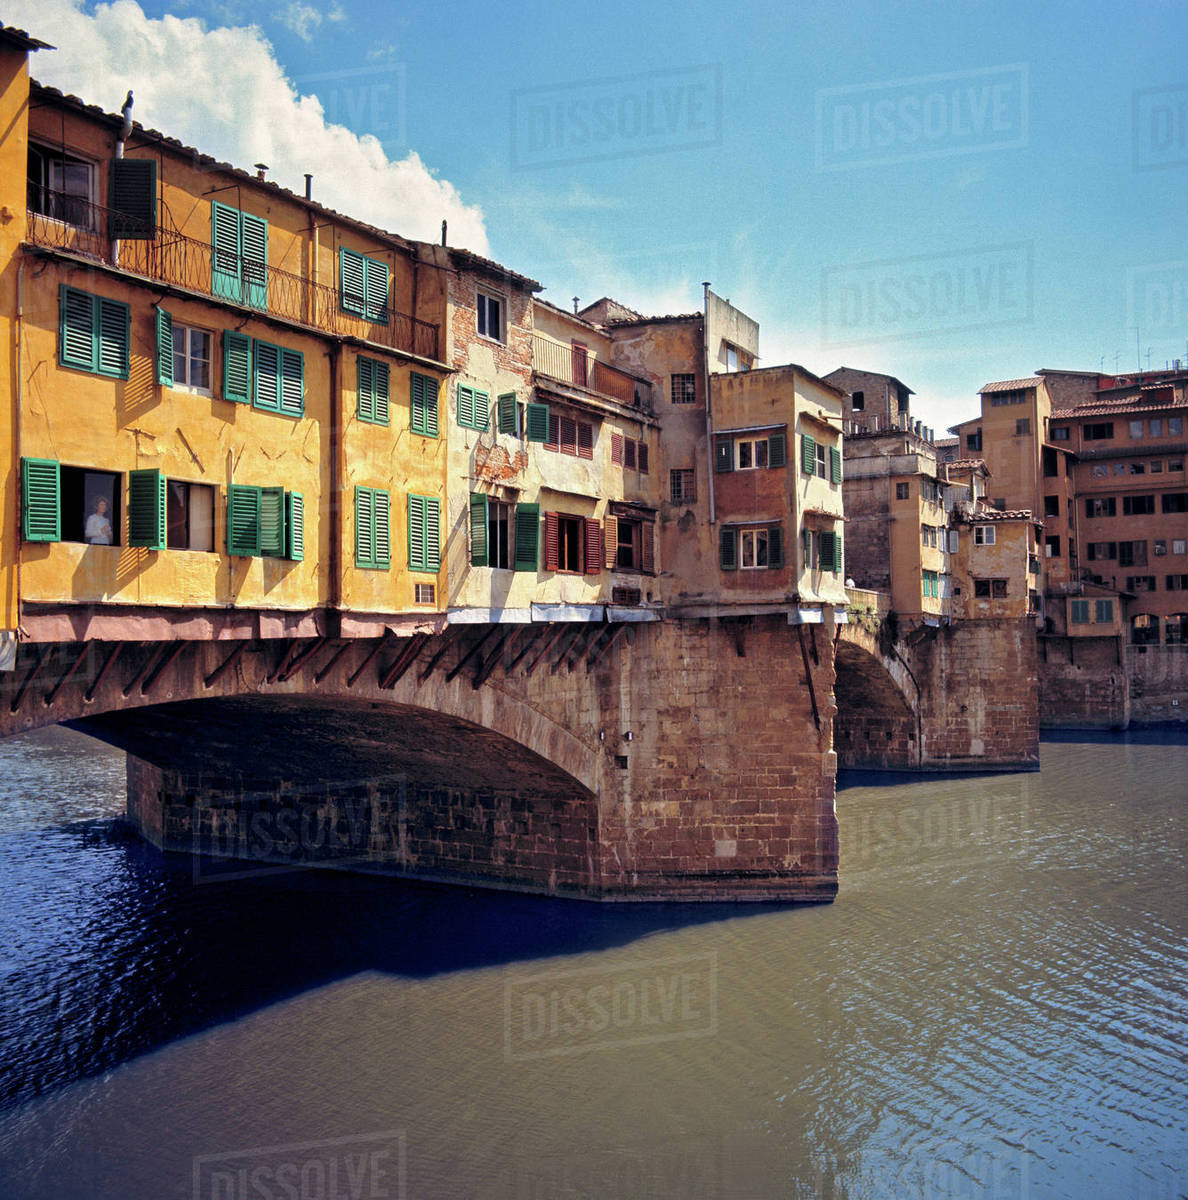 Europe, Italy, Florence. The Ponte Vecchio, a World Heritage Site, spans the Arno River in Florence, Italy. Rights-managed stock photo